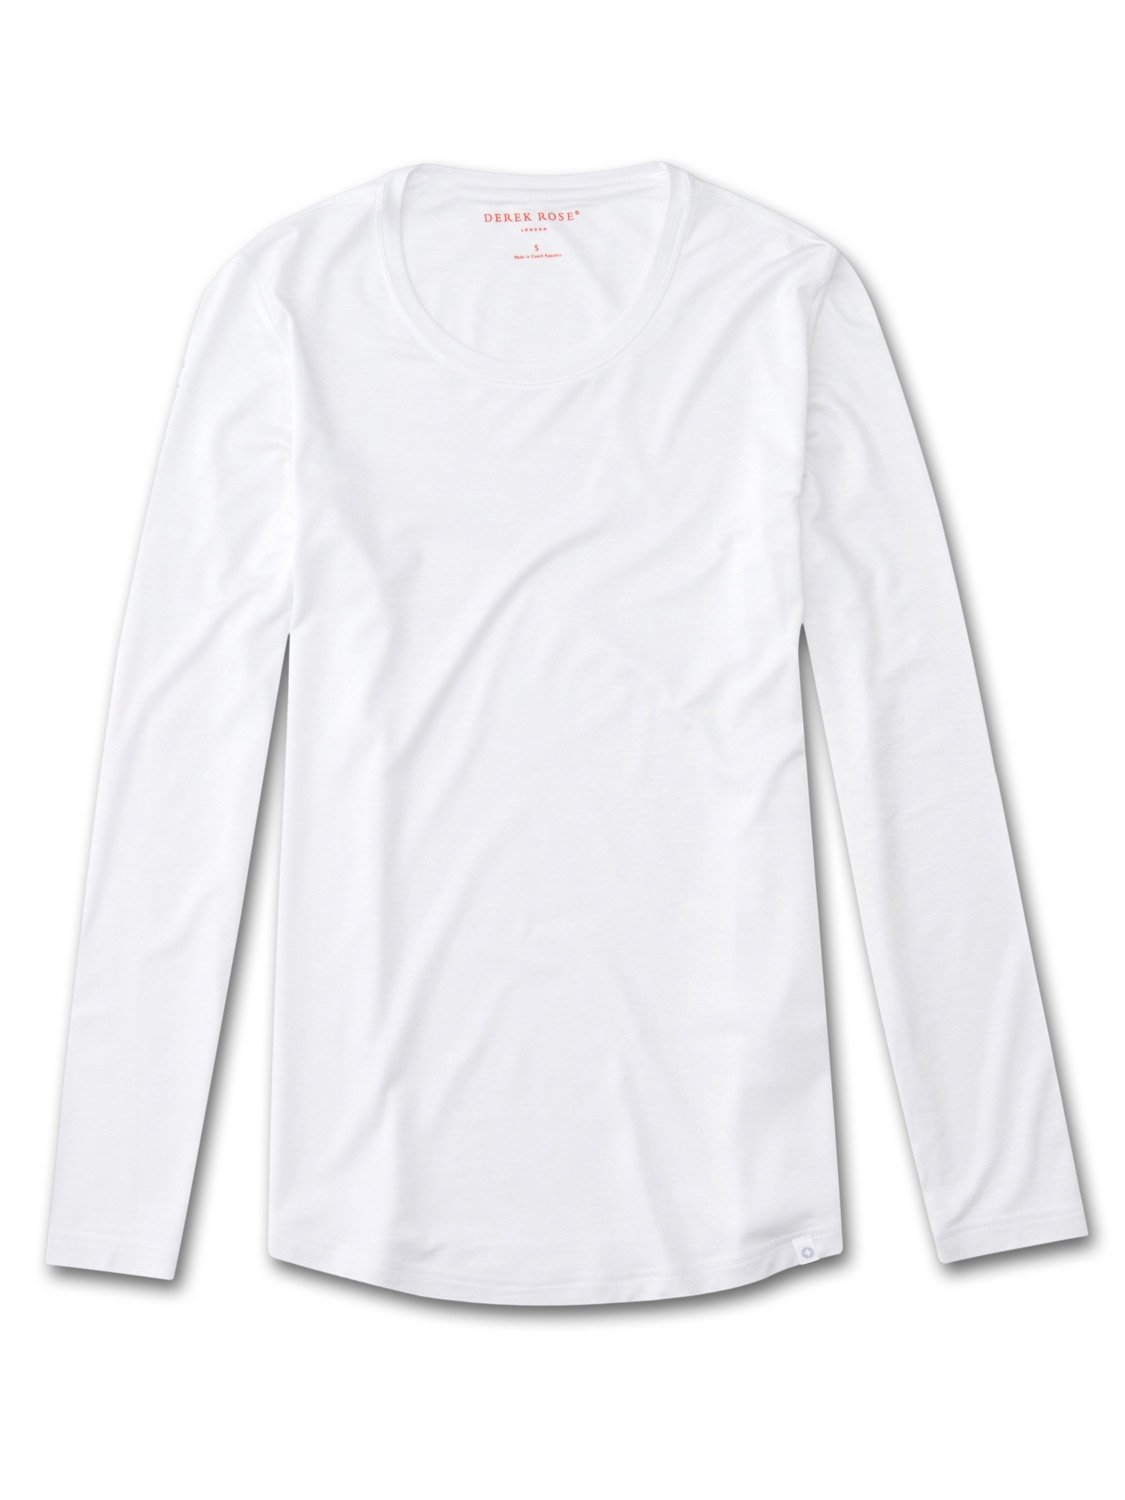 Women's Long Sleeve T-Shirt Carla Micro Modal Stretch White